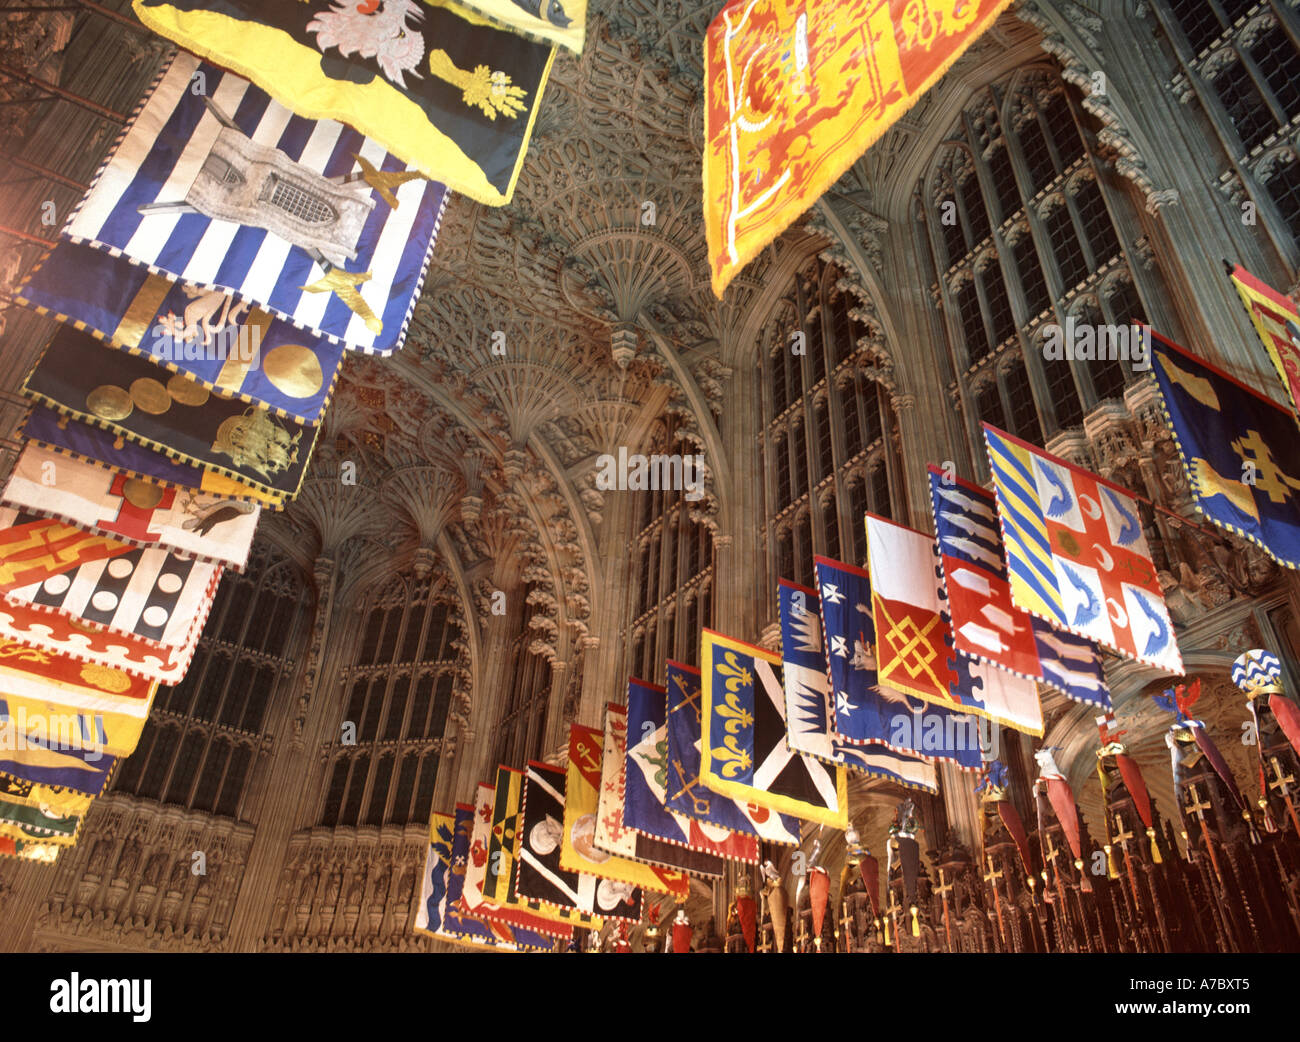 London Westminster Abbey Henry Vii Lady Chapel &  heraldic banners of the knights of the Order of Bath - Stock Image